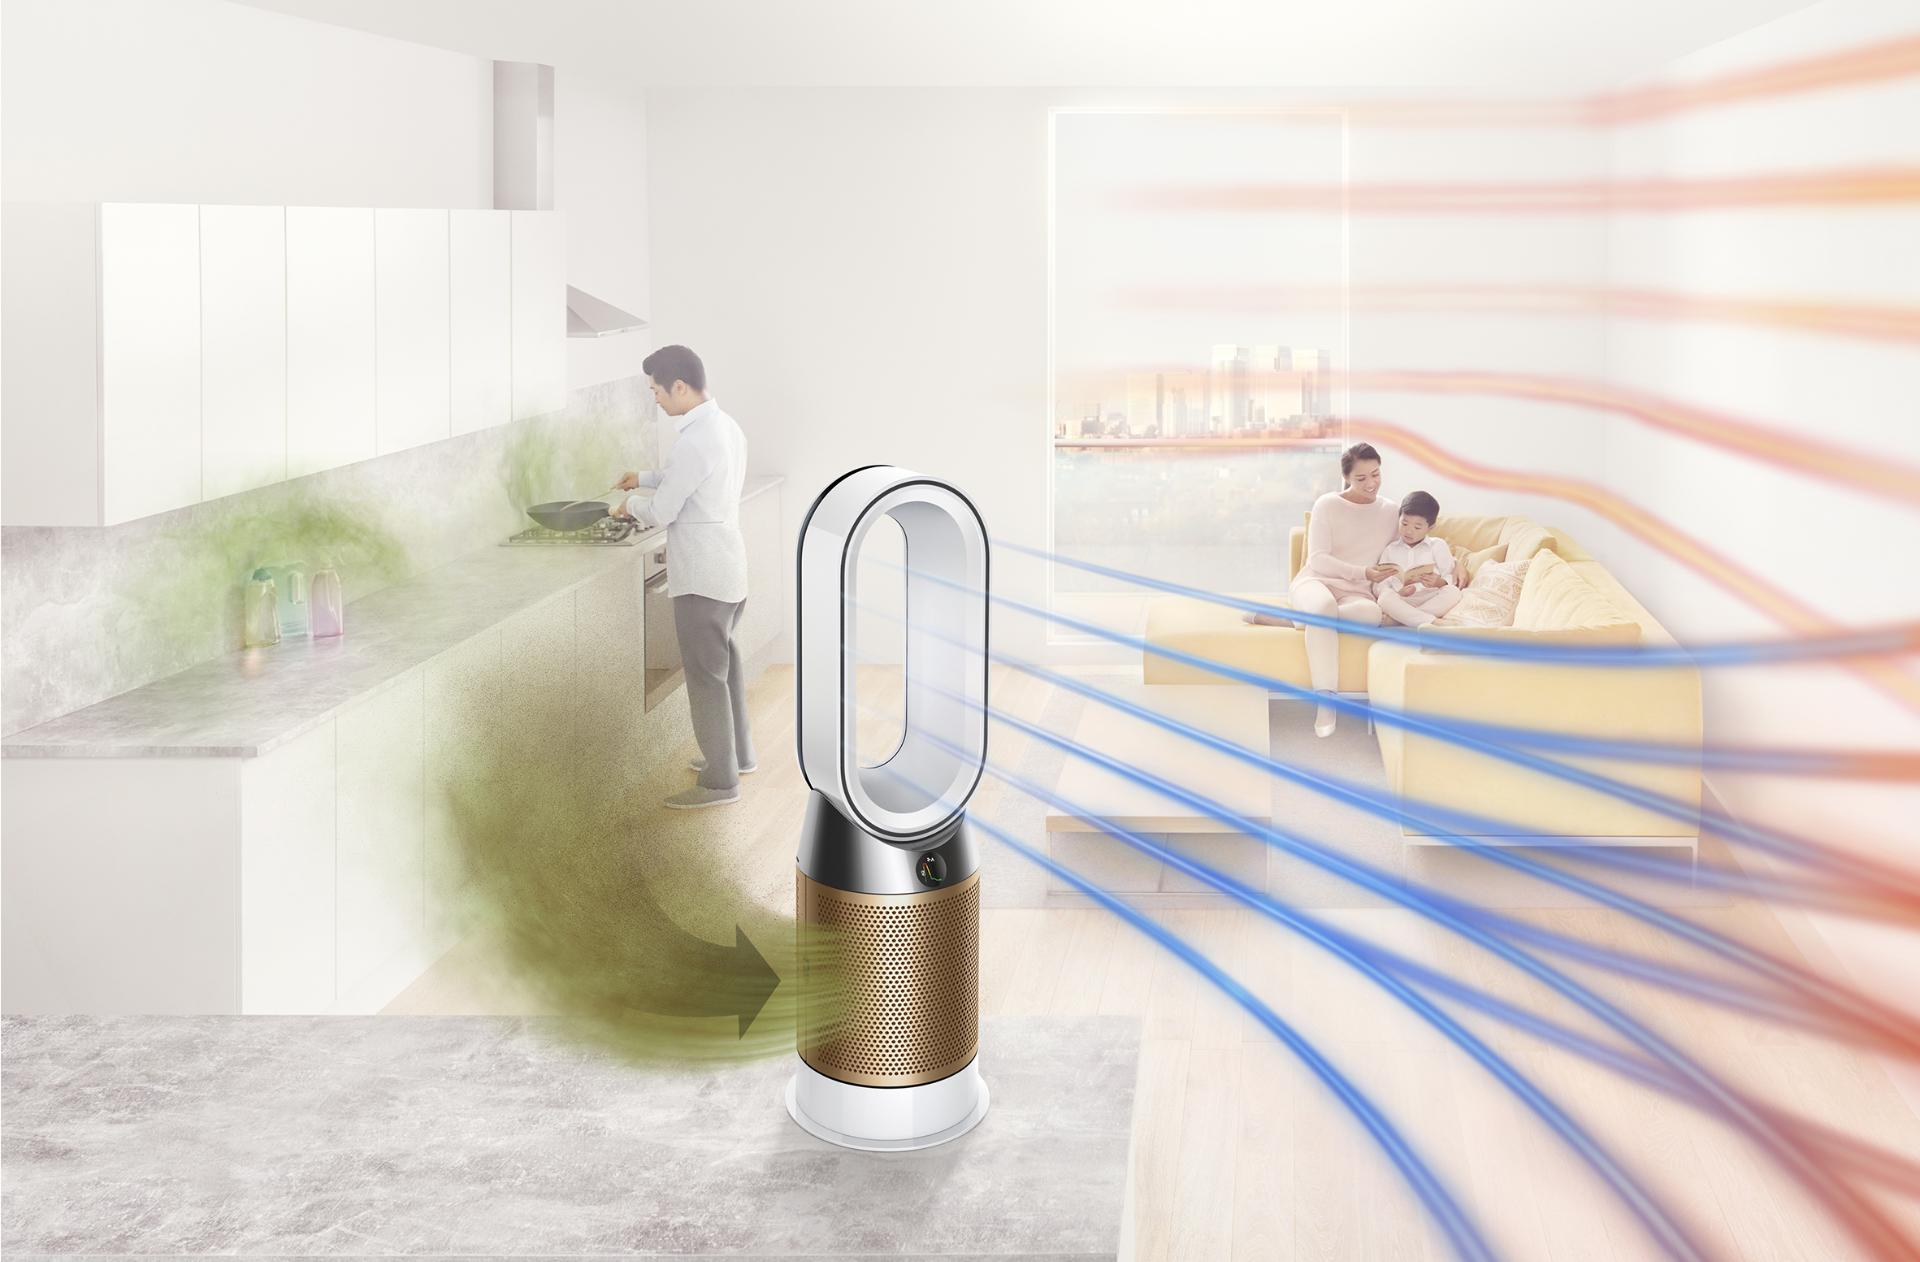 Dyson Pure Hot+Cool Cryptomic purifier projecting purified air